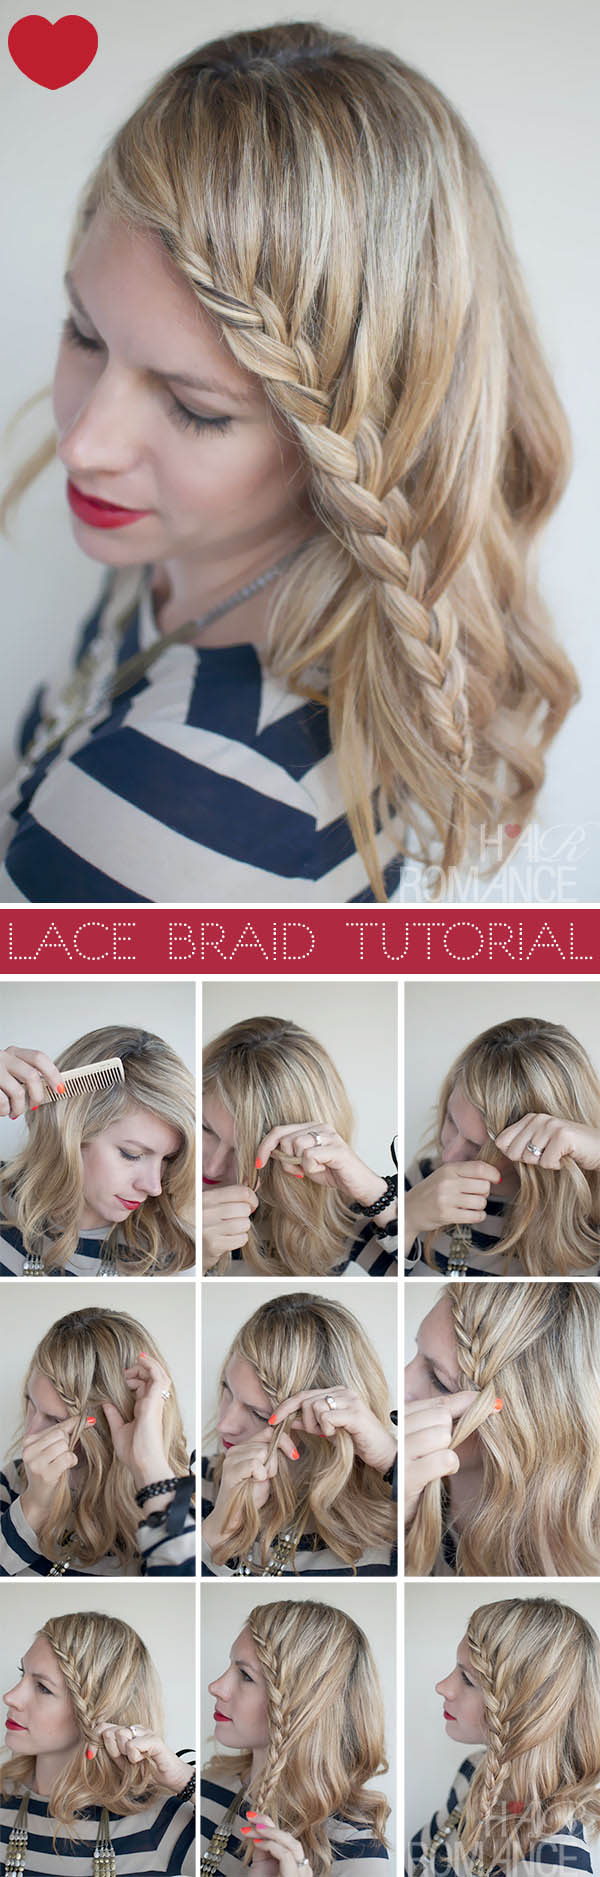 Tremendous 20 Most Beautiful Braided Hairstyle Tutorials For 2014 Pretty Short Hairstyles For Black Women Fulllsitofus